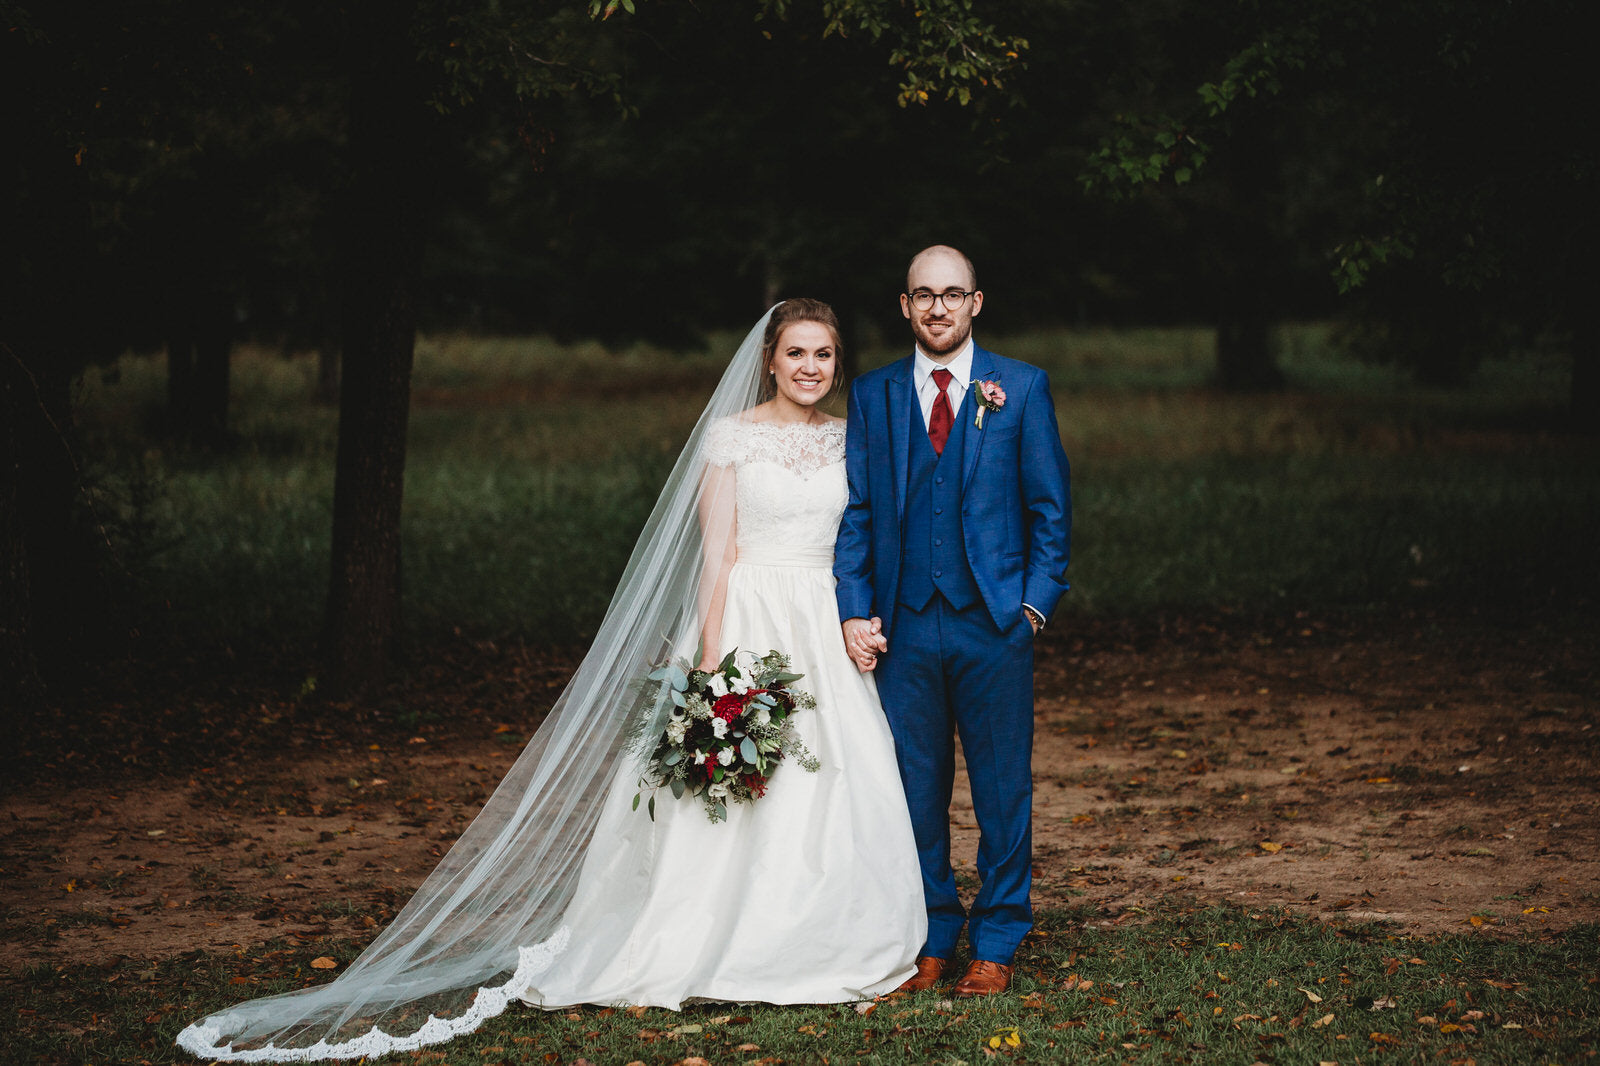 outdoor wedding with bride in long cathedral veil trimmed in alencon lace